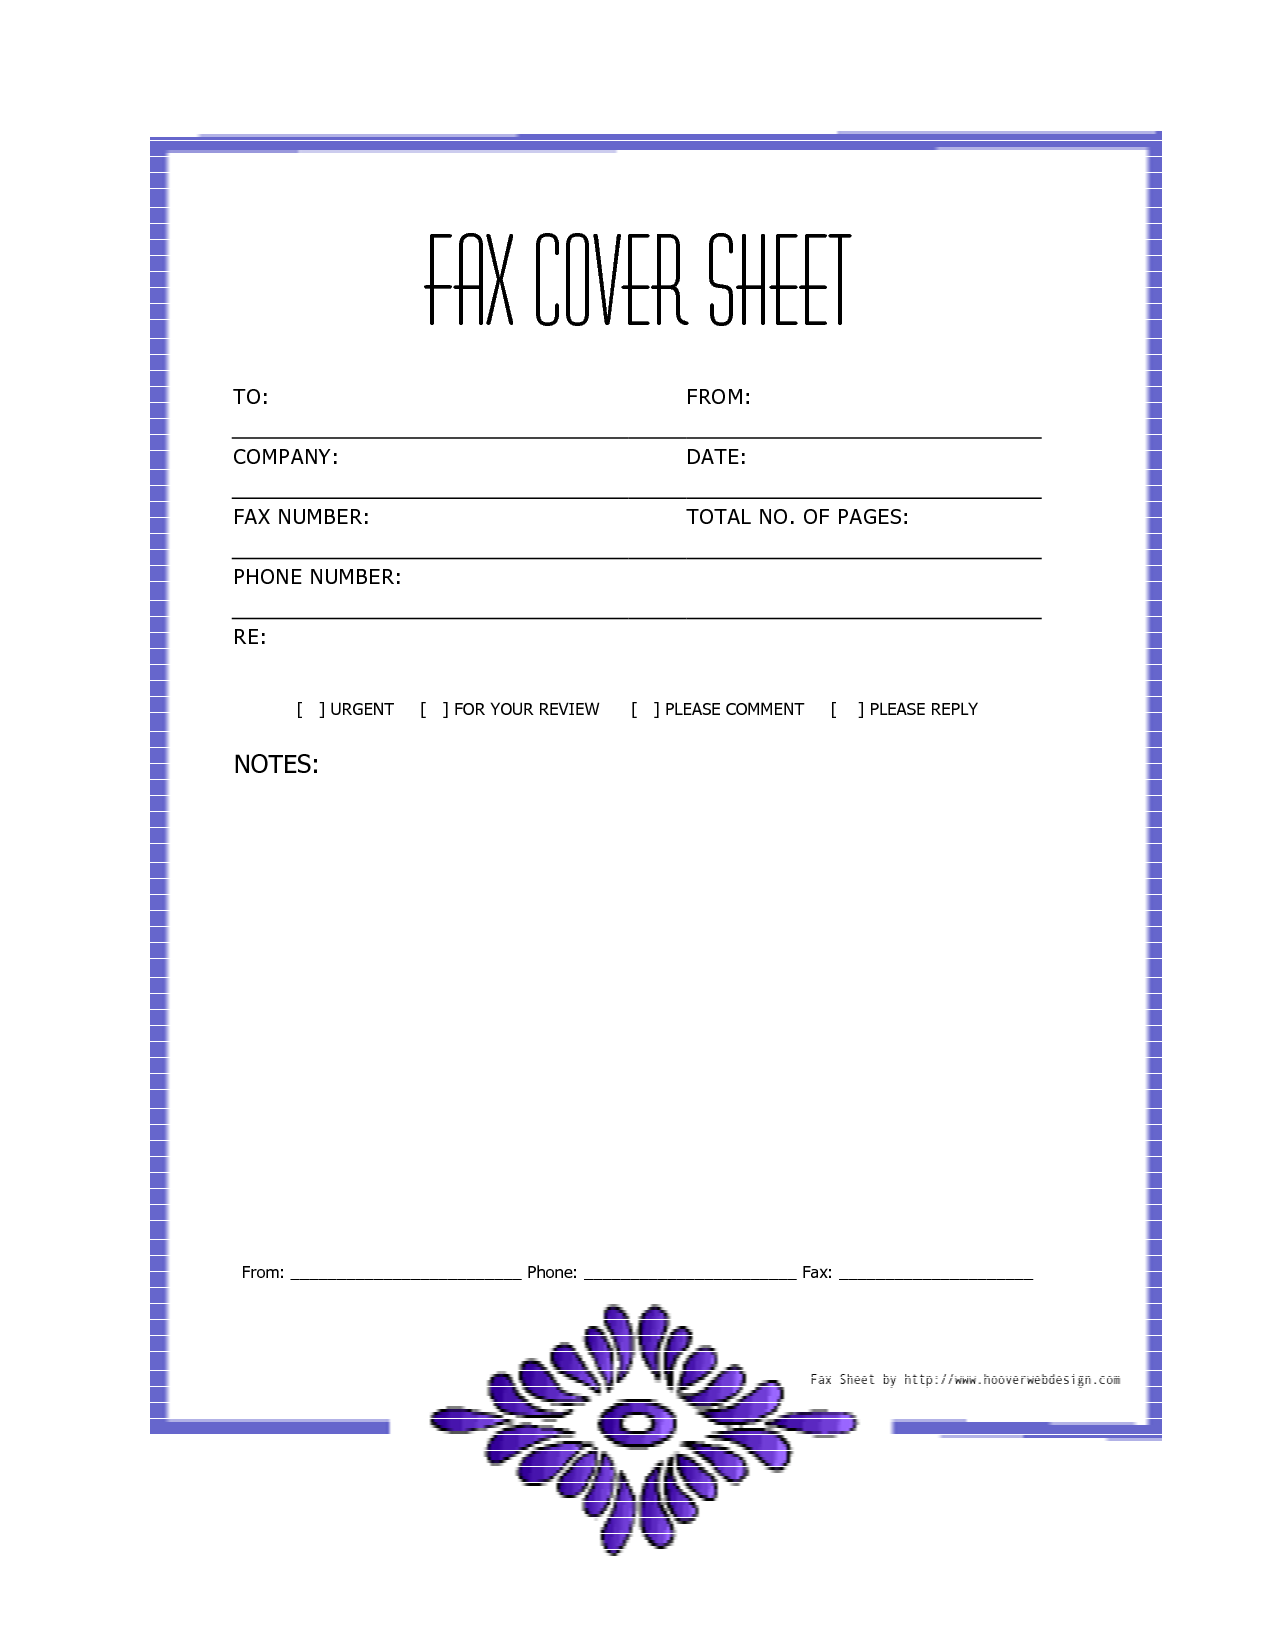 Free Downloads Fax Covers Sheets | Free Printable Fax Cover Sheet Template  Elegant   Download As  Fax Template For Word